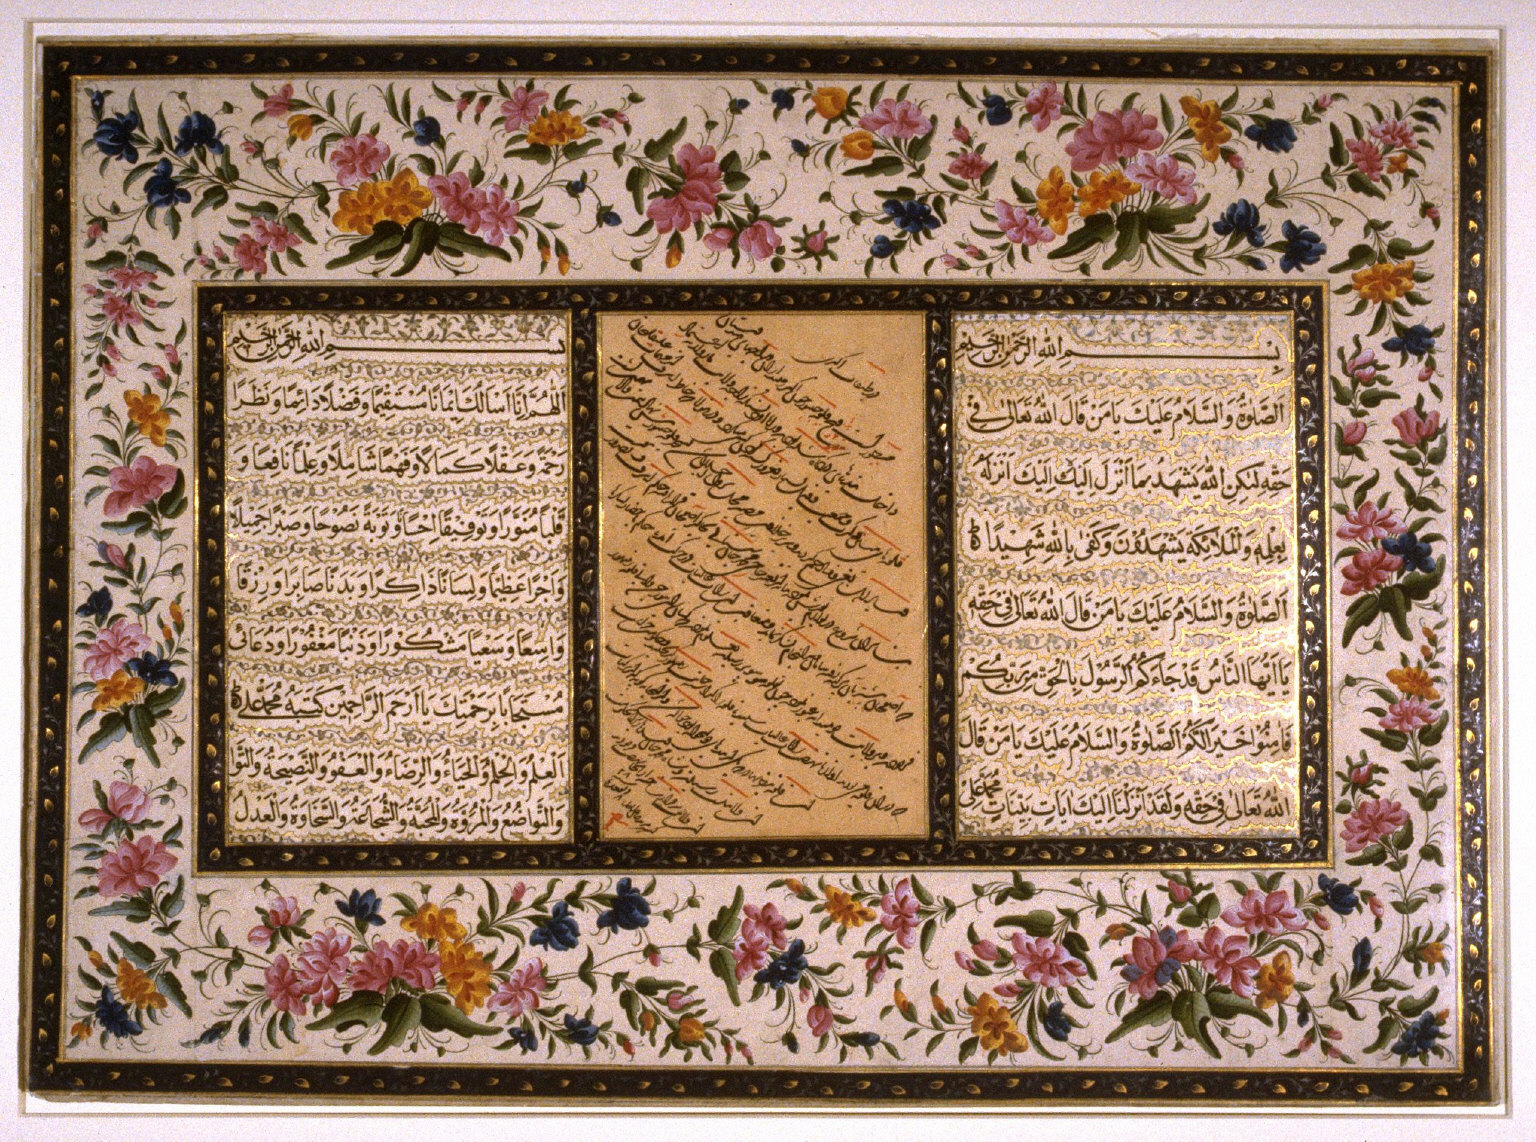 A page of calligraphy from the Lady Coote Album